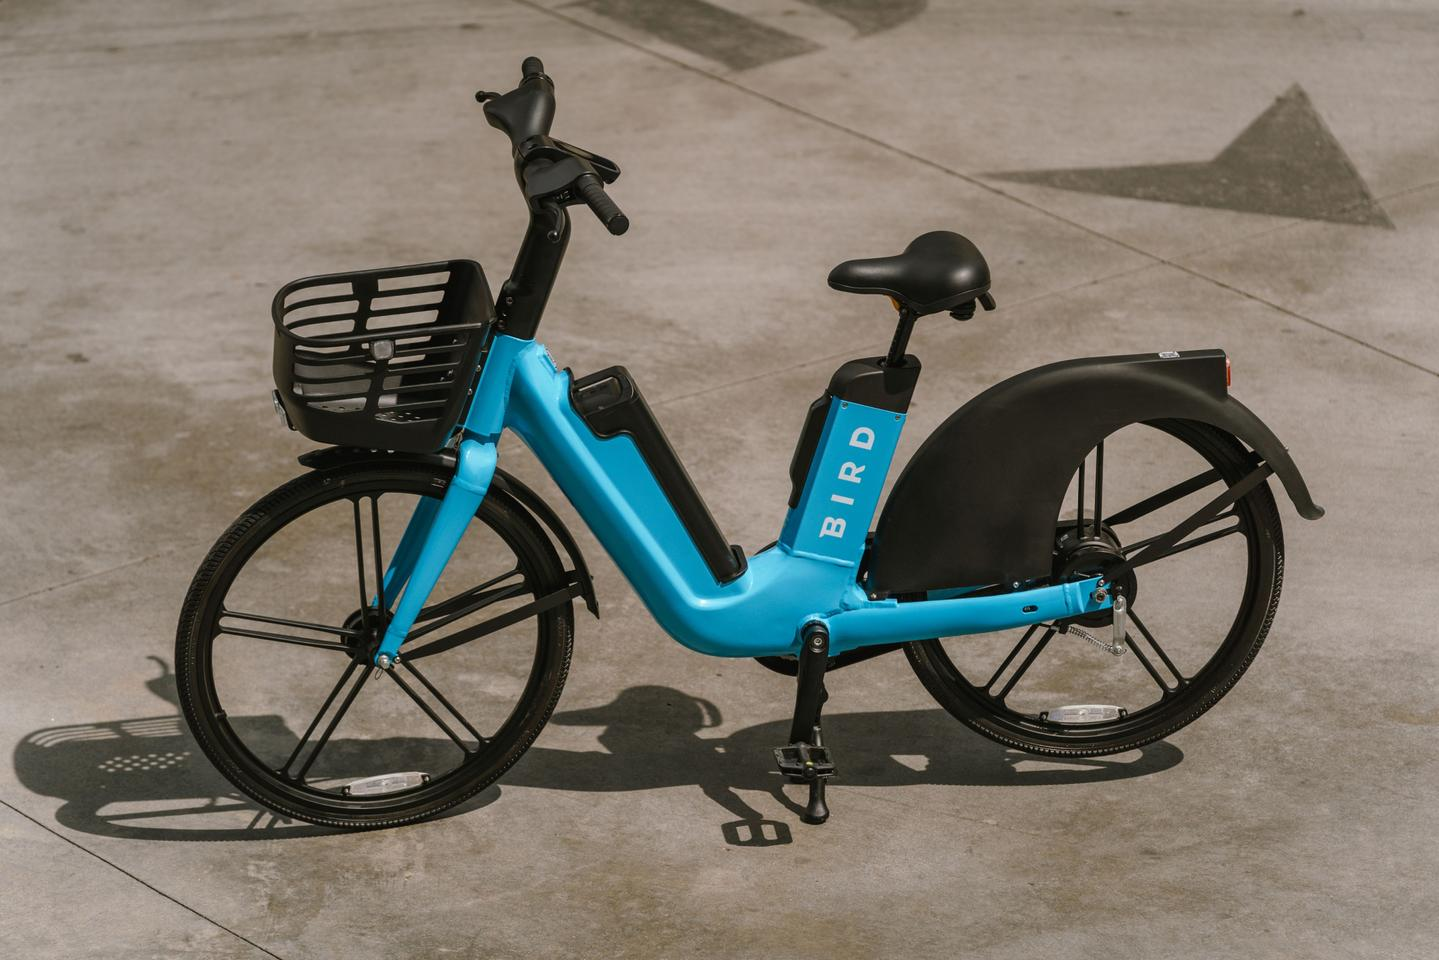 The Bird Bike features a 75-lb step-through frame for easier mount and dismount